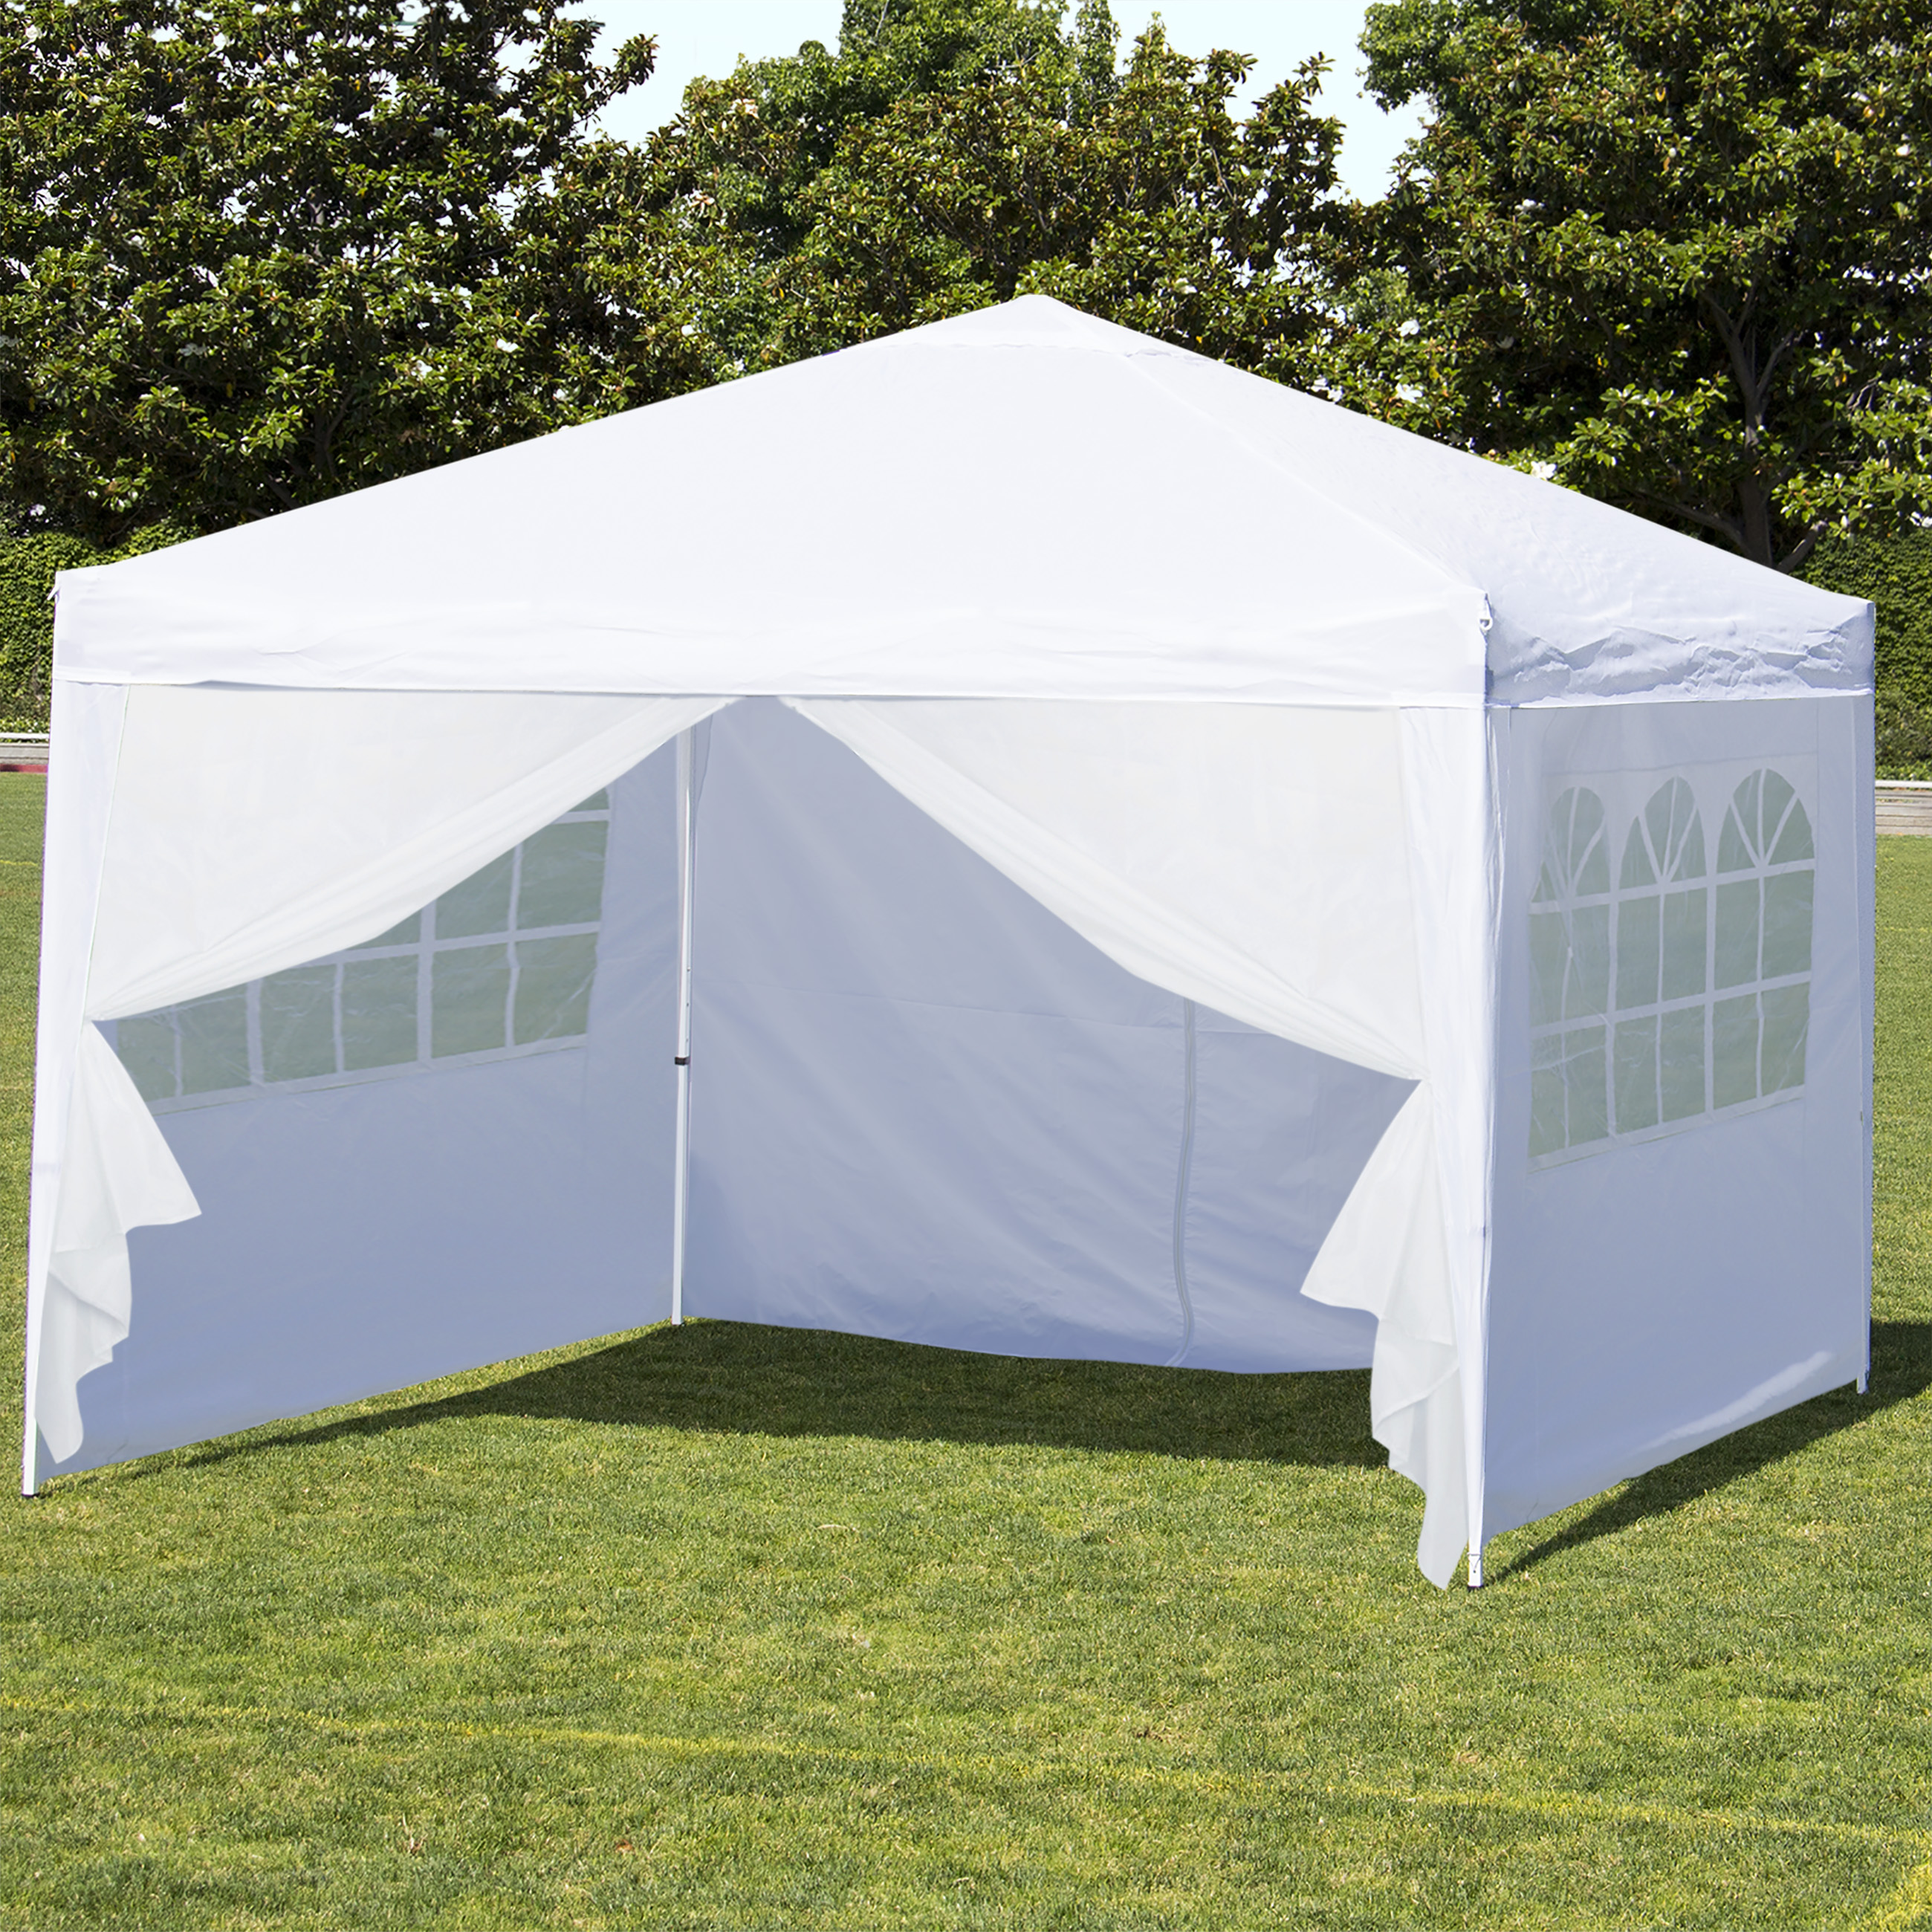 Best Choice Products 10x10ft Portable Lightweight Pop Up Canopy Tent W Side Walls And Carrying Bag Walmart Com